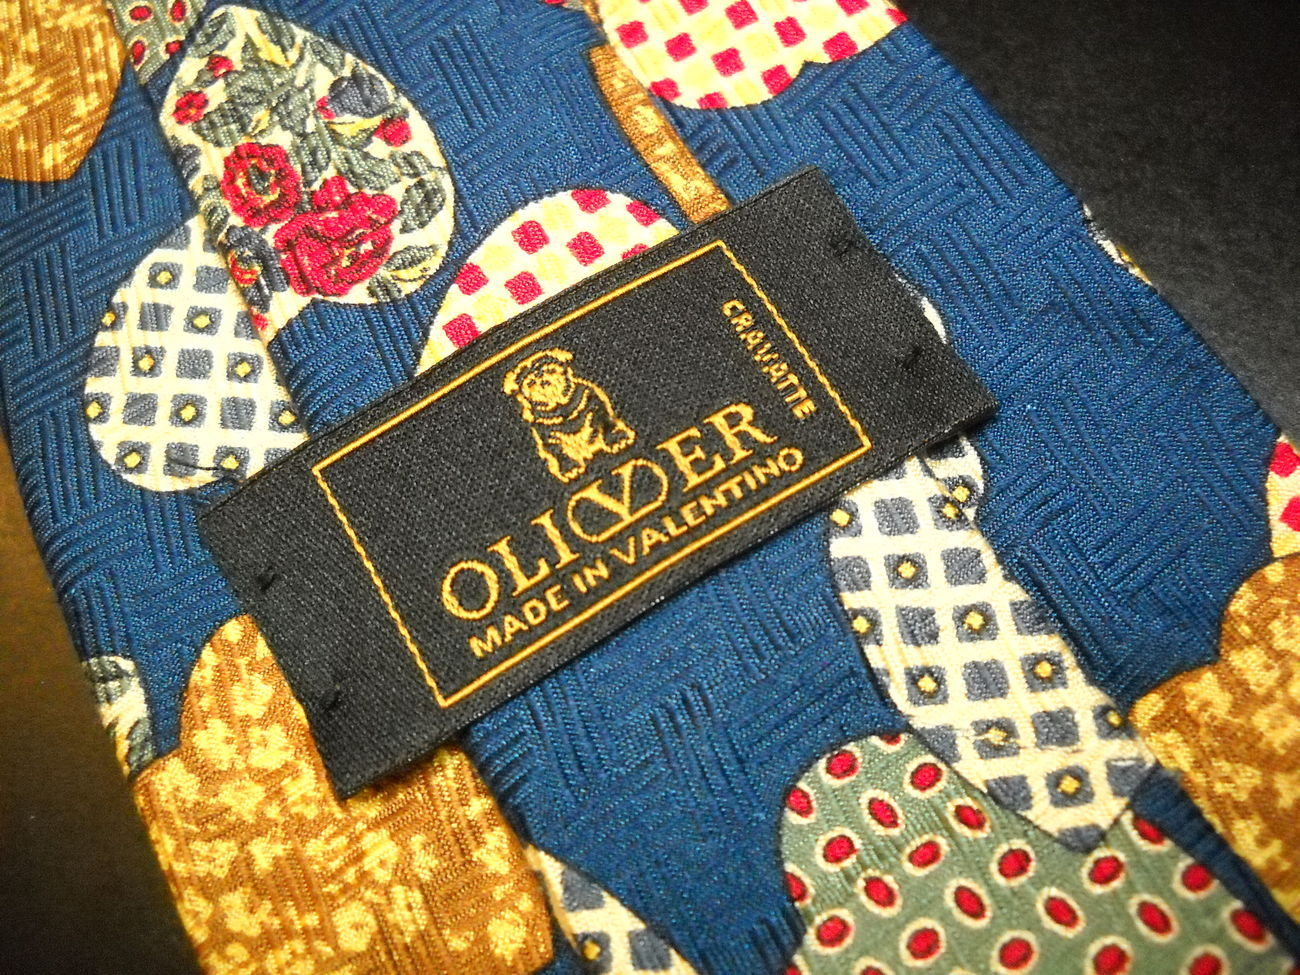 Oliver Made in Valentino Cravatte Neck Tie Blue Repeating Hearts Silk Italian